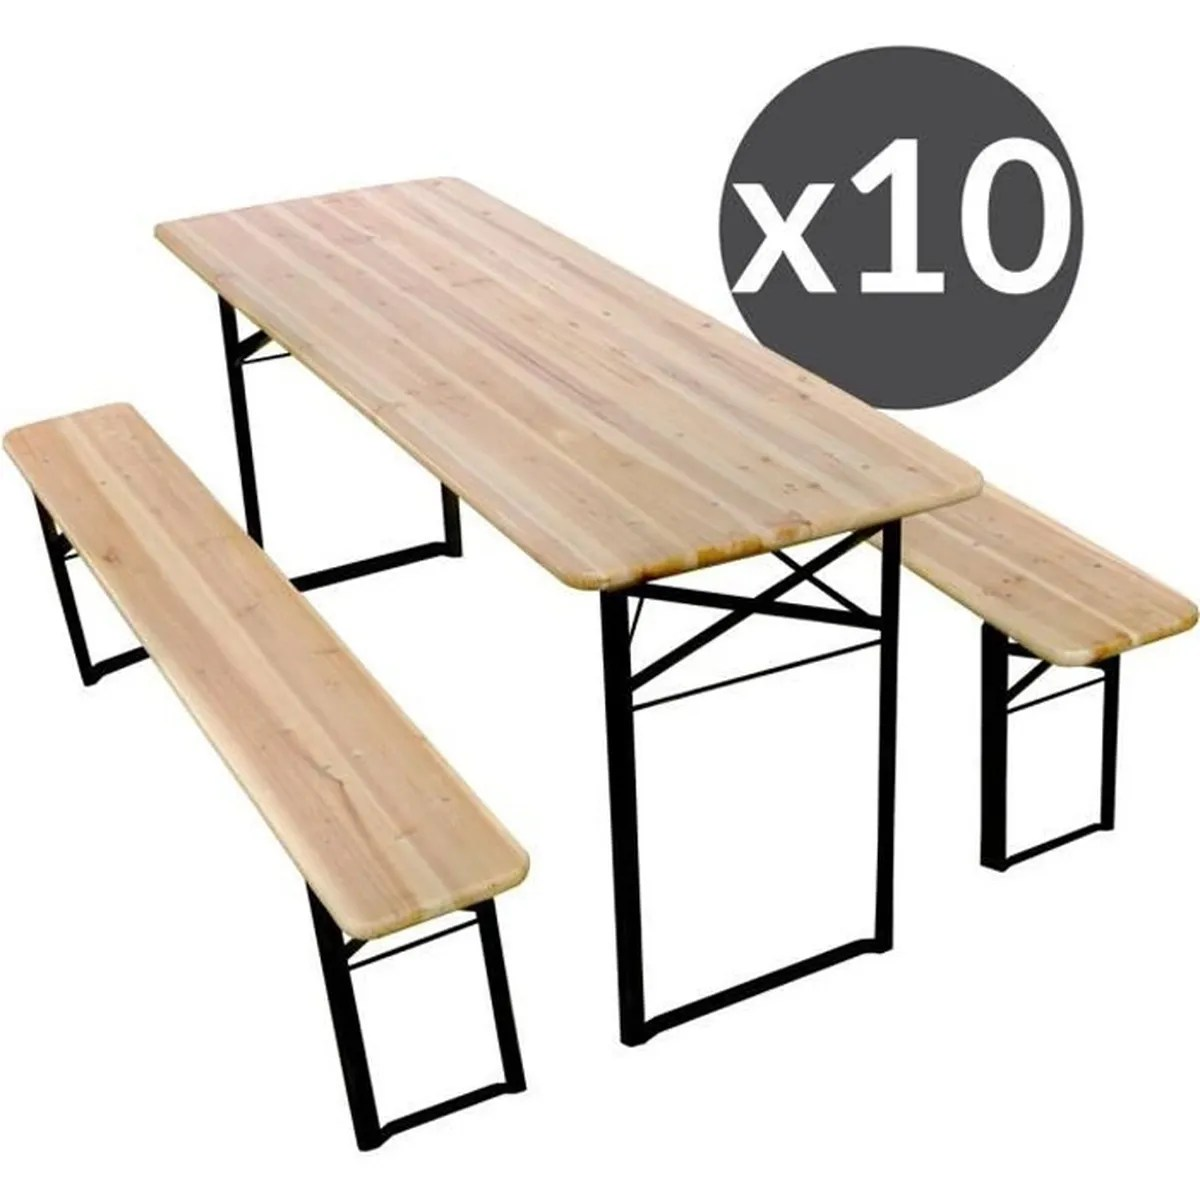 Salon De Jardin Banc Et Table Set Table Et Banc Pliants Bois 220 Cm Lot De 10